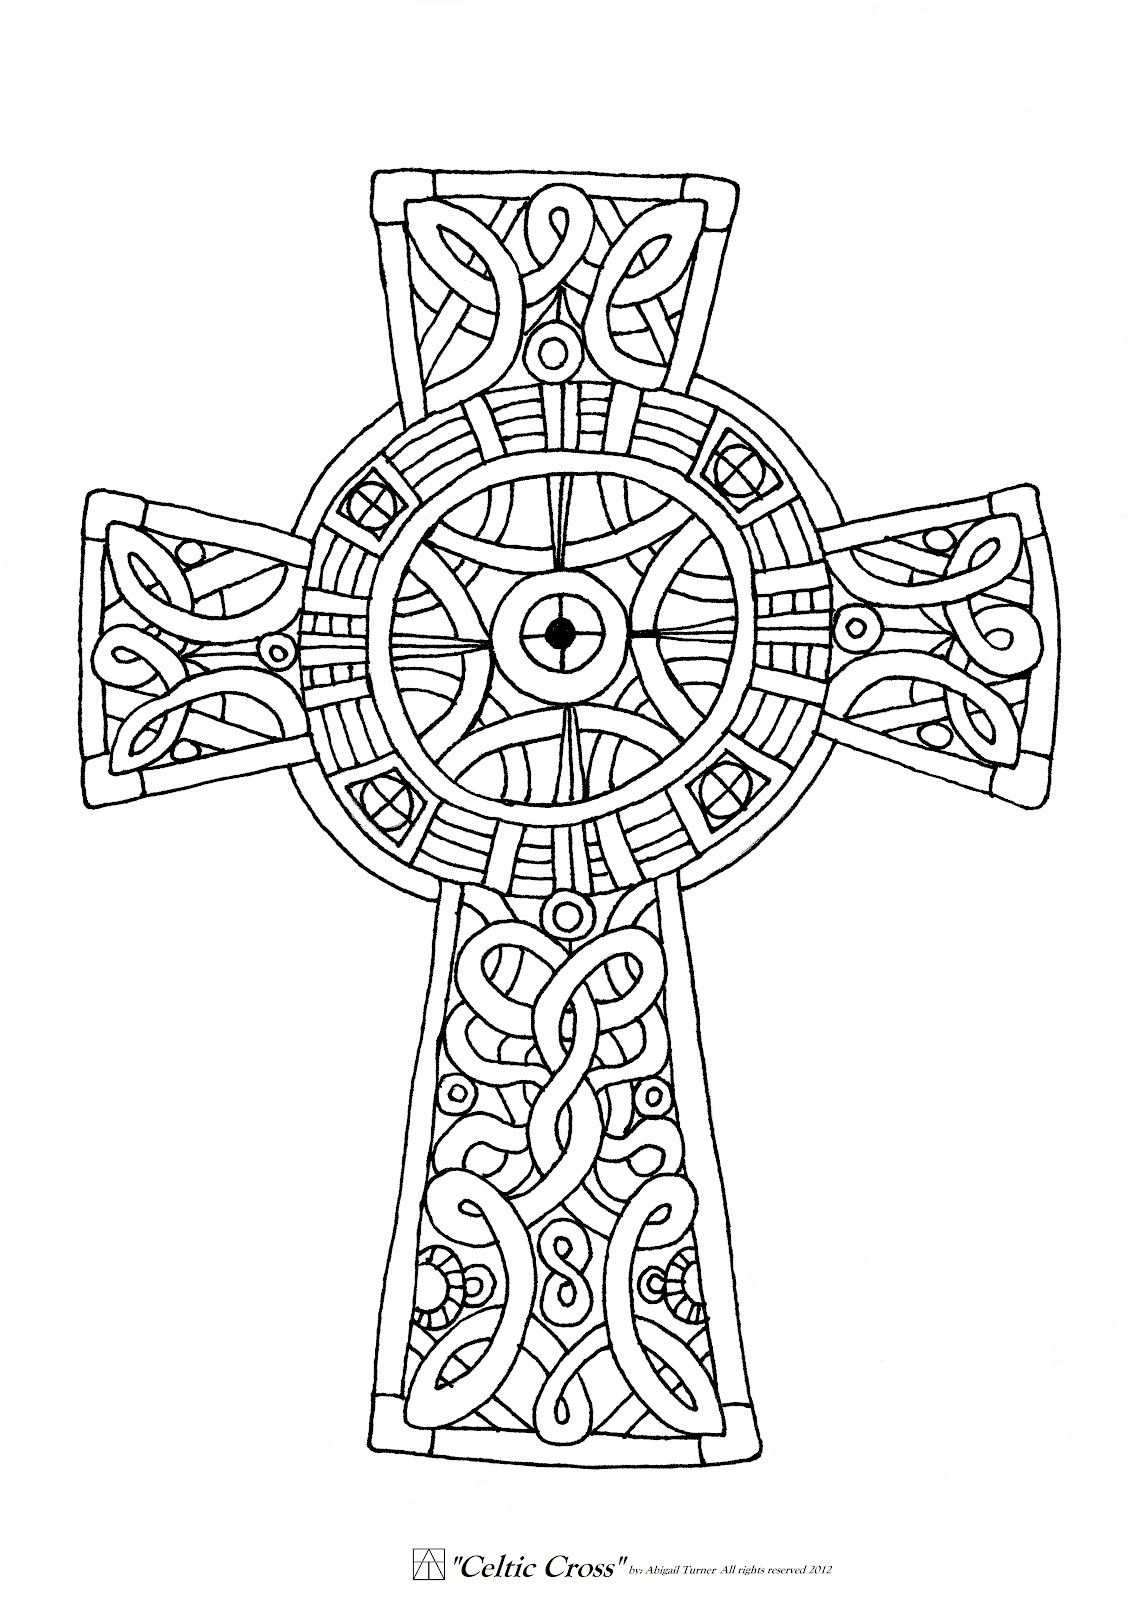 Free Printable Celtic Cross Coloring Pages | coloring pages ...